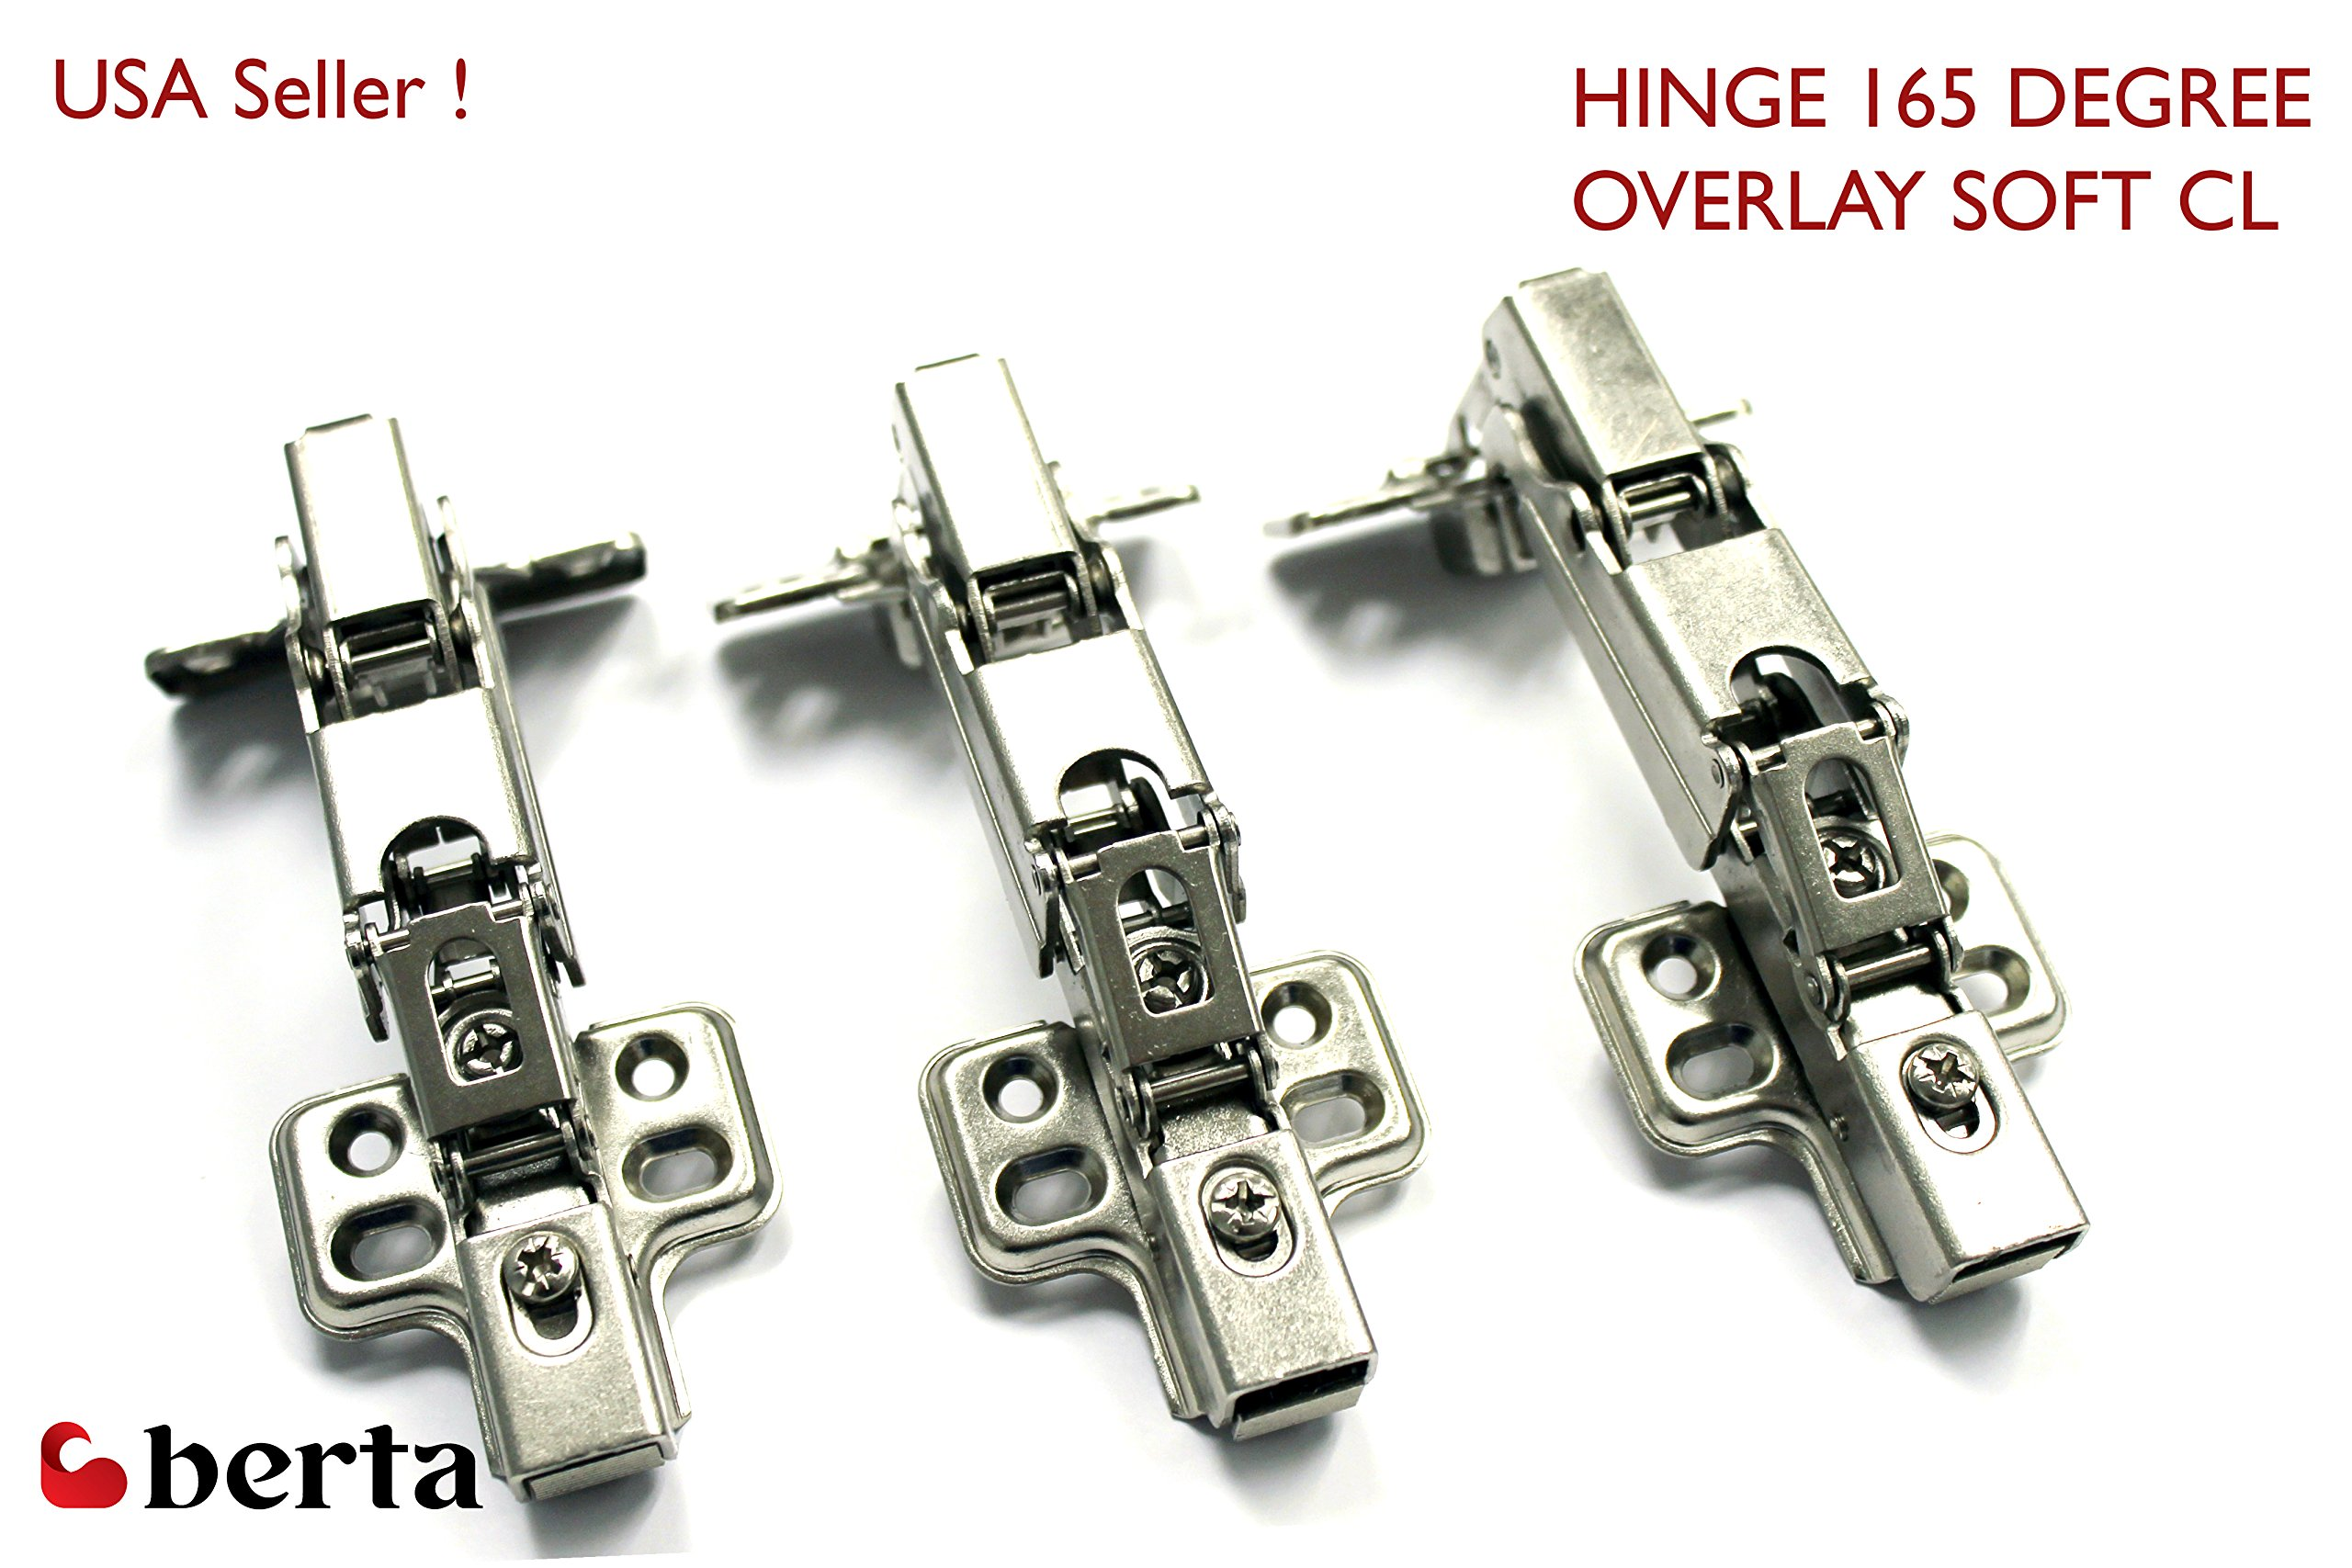 50 Pack Berta Concealed Kitchen Cabinet Door Hinge 165 Degree Soft / Self Closing Frameless Mounting Full Overlay